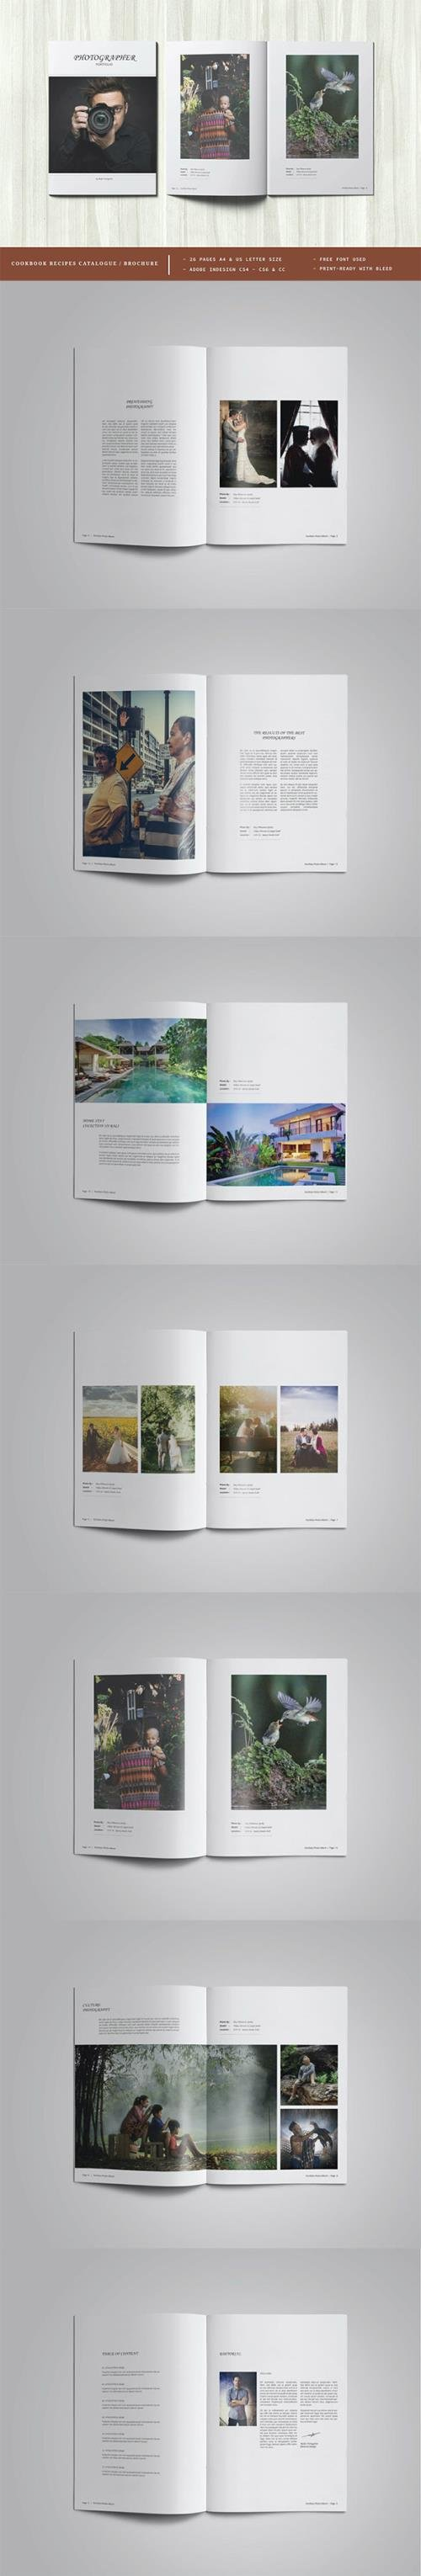 Photography Portfolio or Photo Album Template